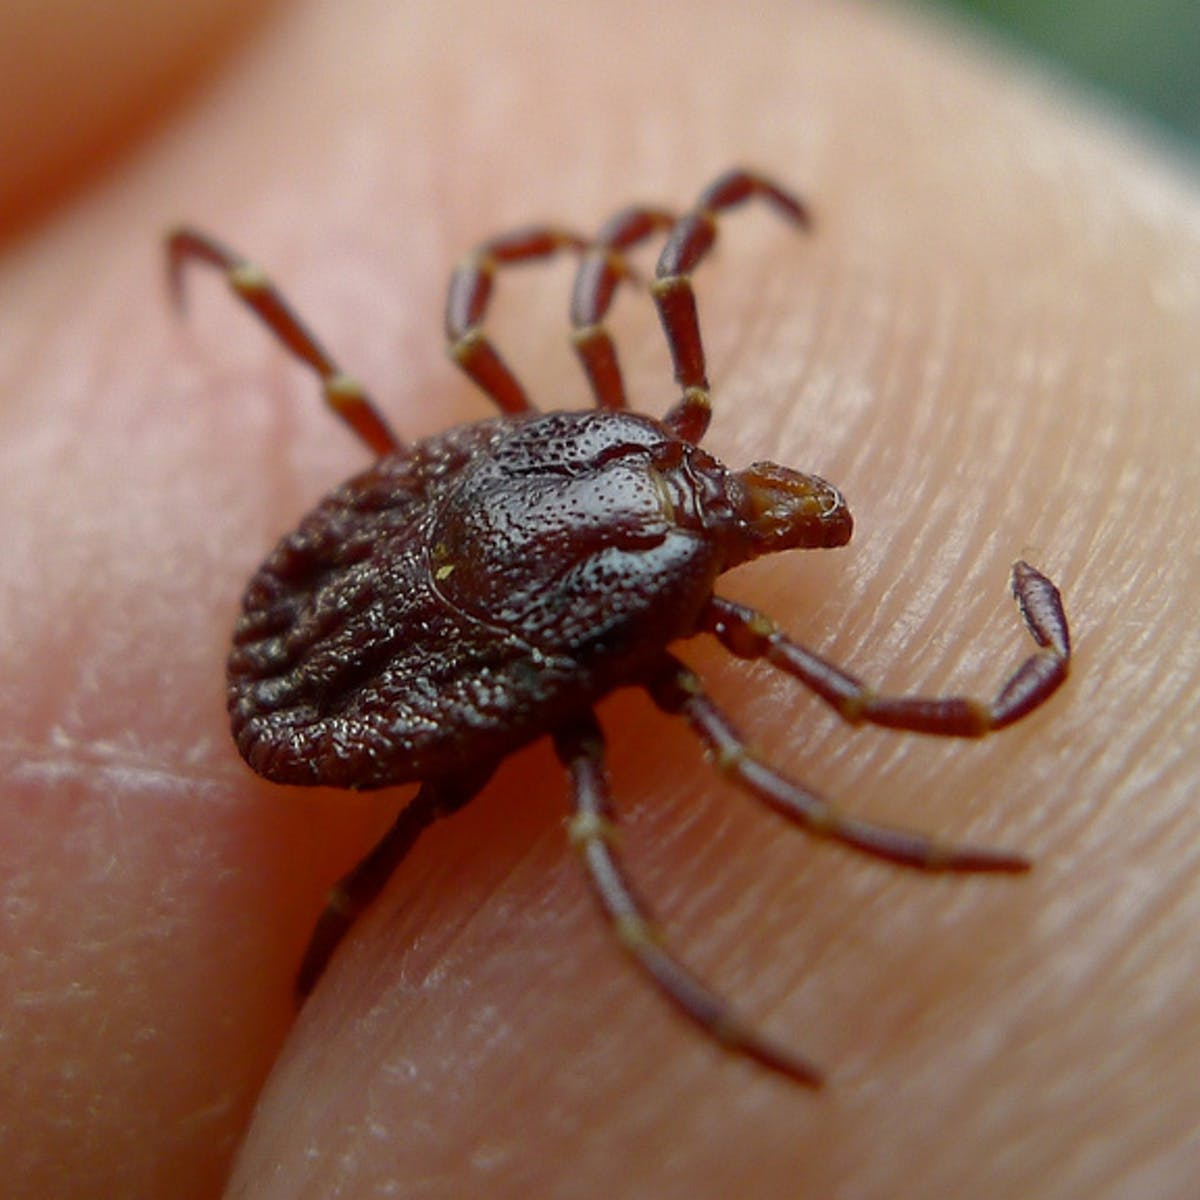 A Plague of Ticks Is Coming: Strategies to Avoid Lyme Disease This Fall